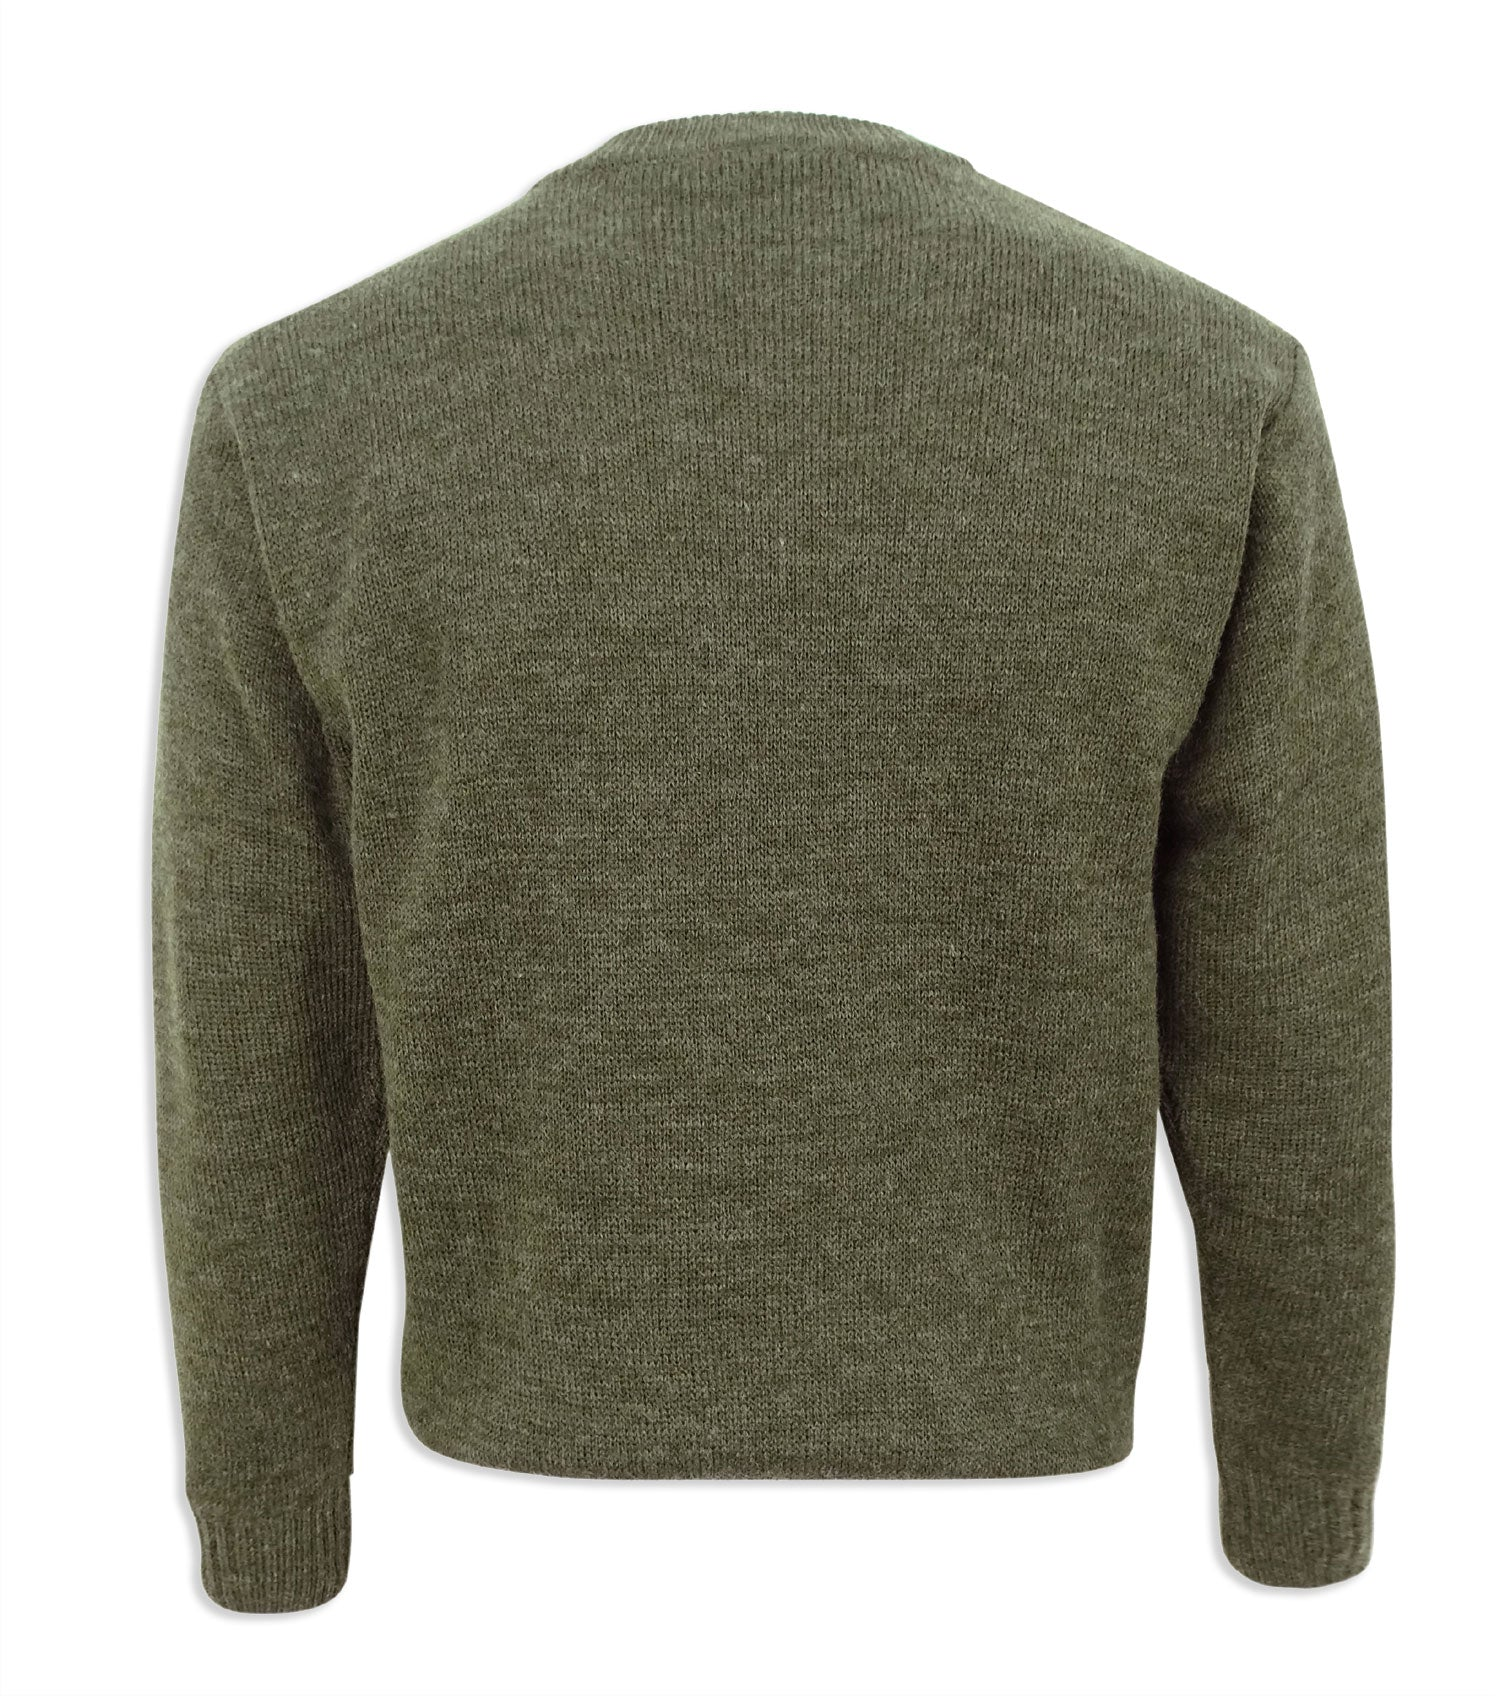 Back view classic country style sweater